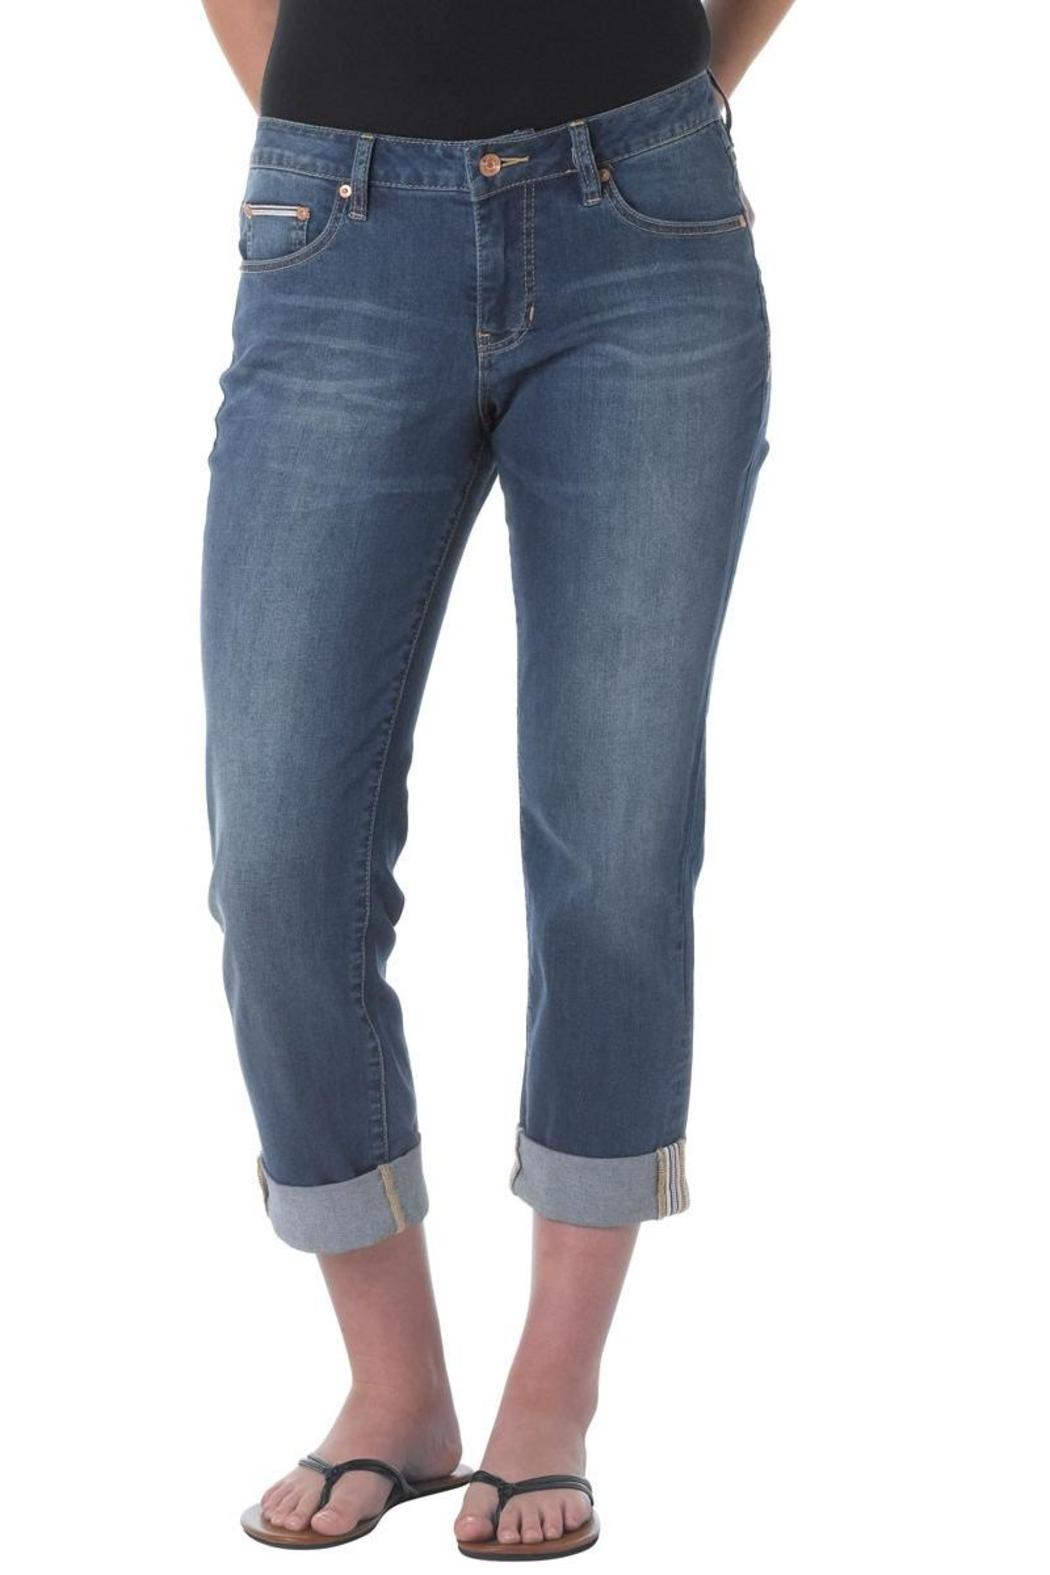 JAG Jeans Jag Boyfriend Jean from Wisconsin by MaCandis Boutique u2014 Shoptiques